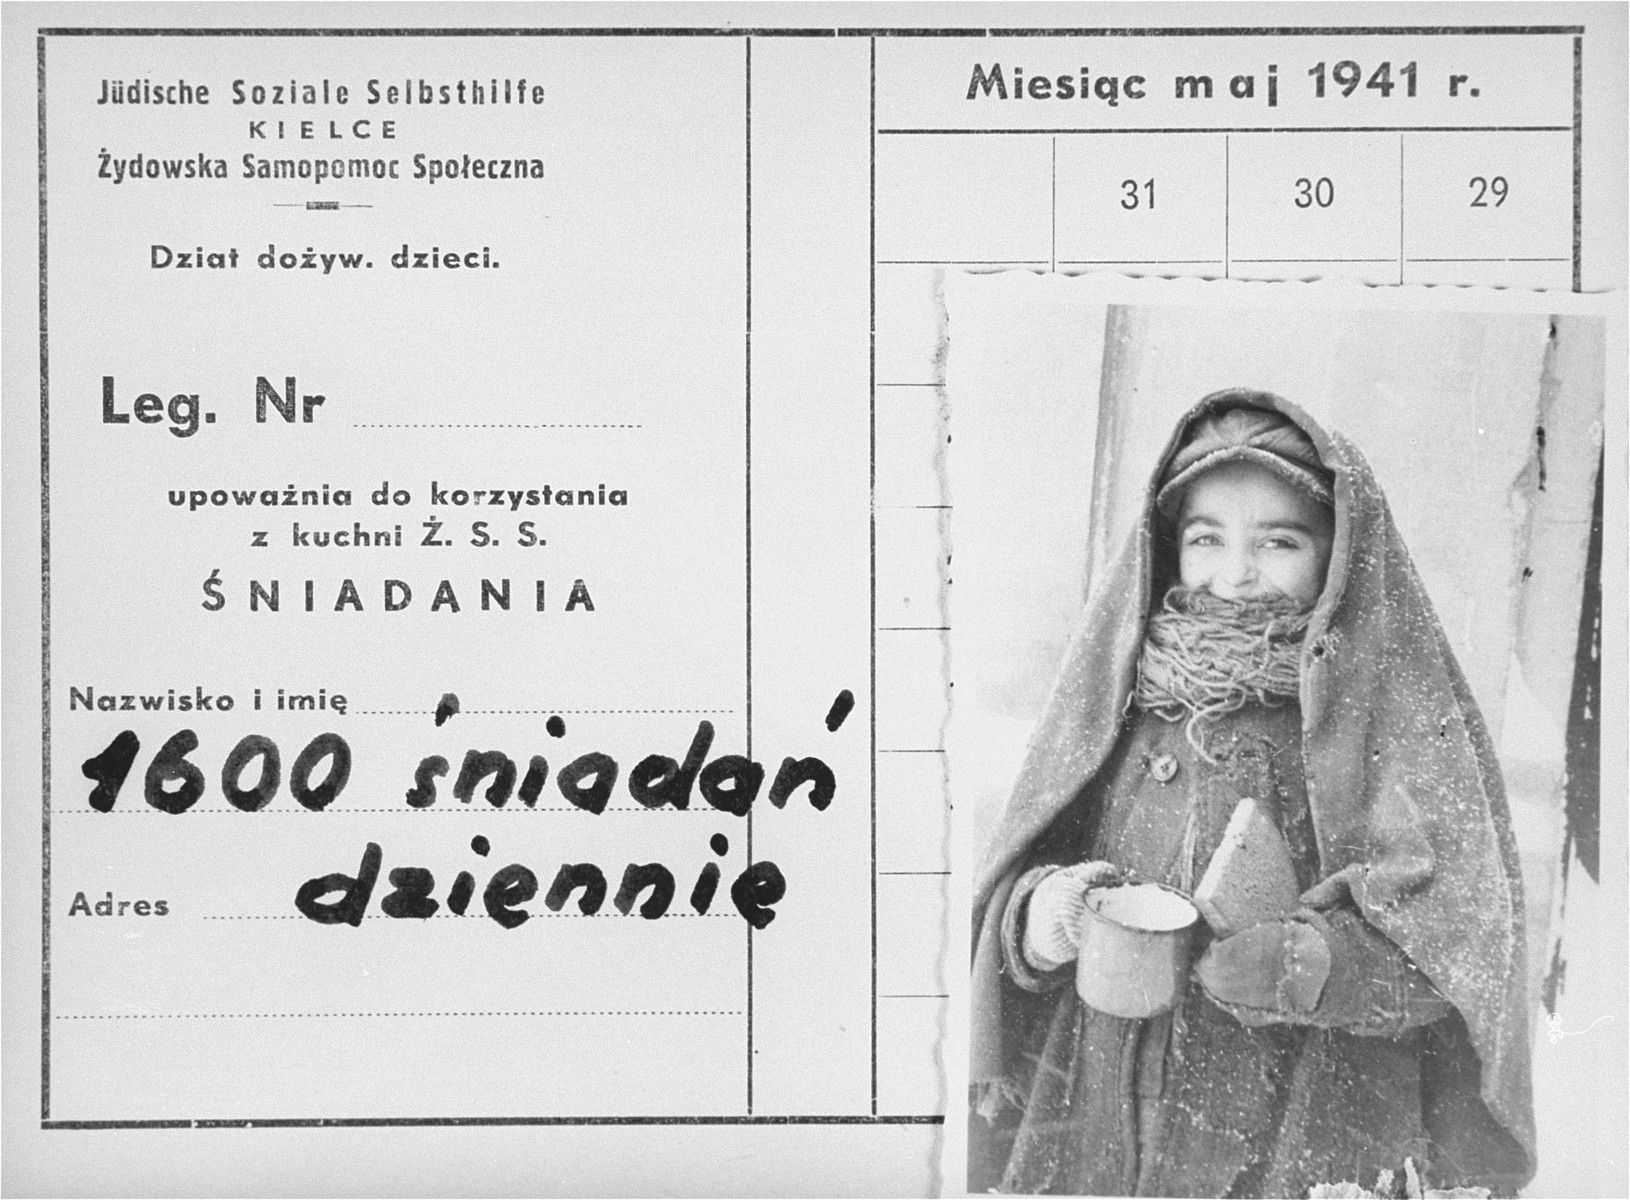 """An identification card bearing a photo of a child holding a cup and a piece of bread in the Kielce ghetto.   An official ID card was required to receive food rations at the soup kitchen organized by the Jewish Social Self-help Committee of the Jewish Council.  The ID card was issued for the month of May 1941, and was valid only for breakfast.  The inscription in Polish reads, """"1,600 morning meals served daily.""""  This photo was one the images included in an official album prepared by the Judenrat of the Kielce ghetto in 1942."""